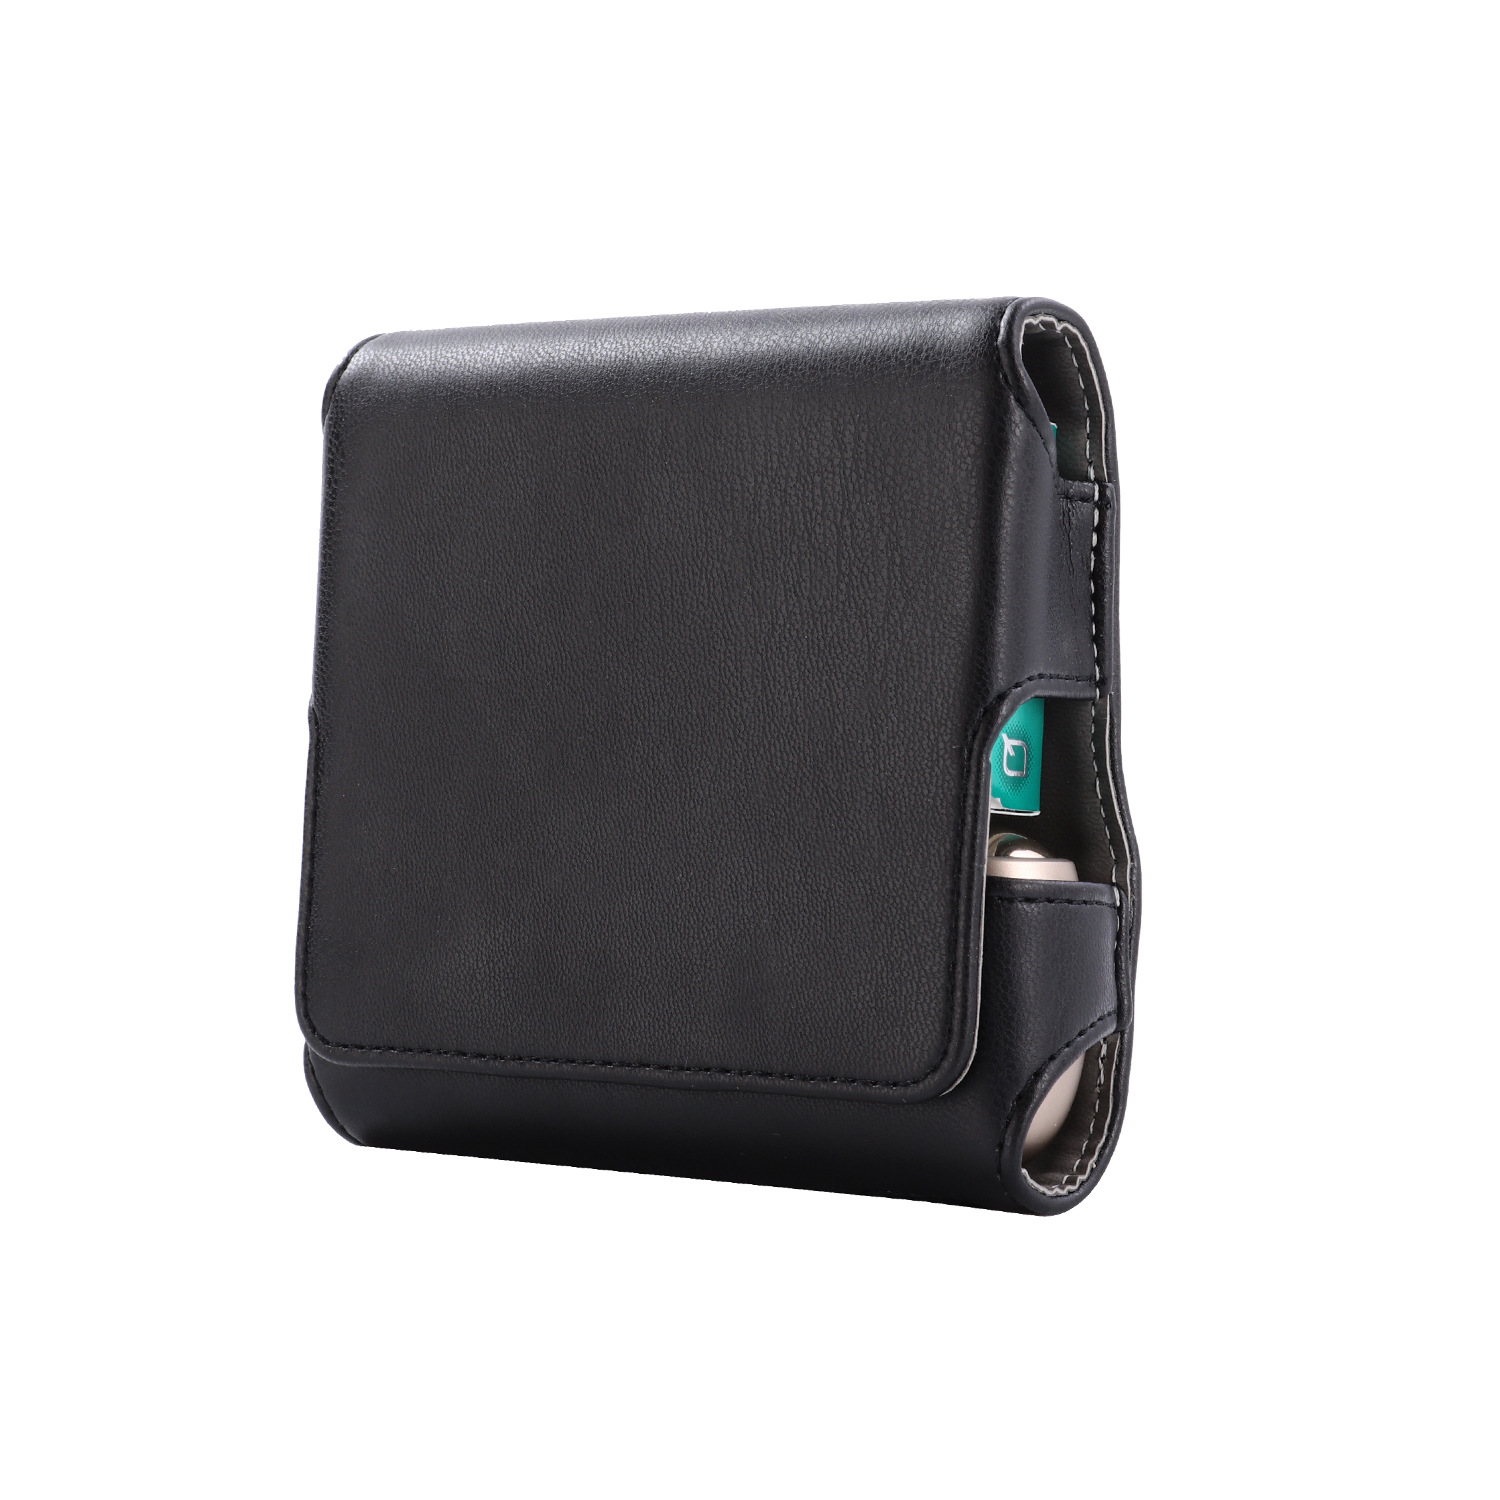 Magnetic Cover Compact Storage Box PU Leather Case for IQOS3.0 Electronic Cigarette with Card Slot Full Protection Shell Pocket  black